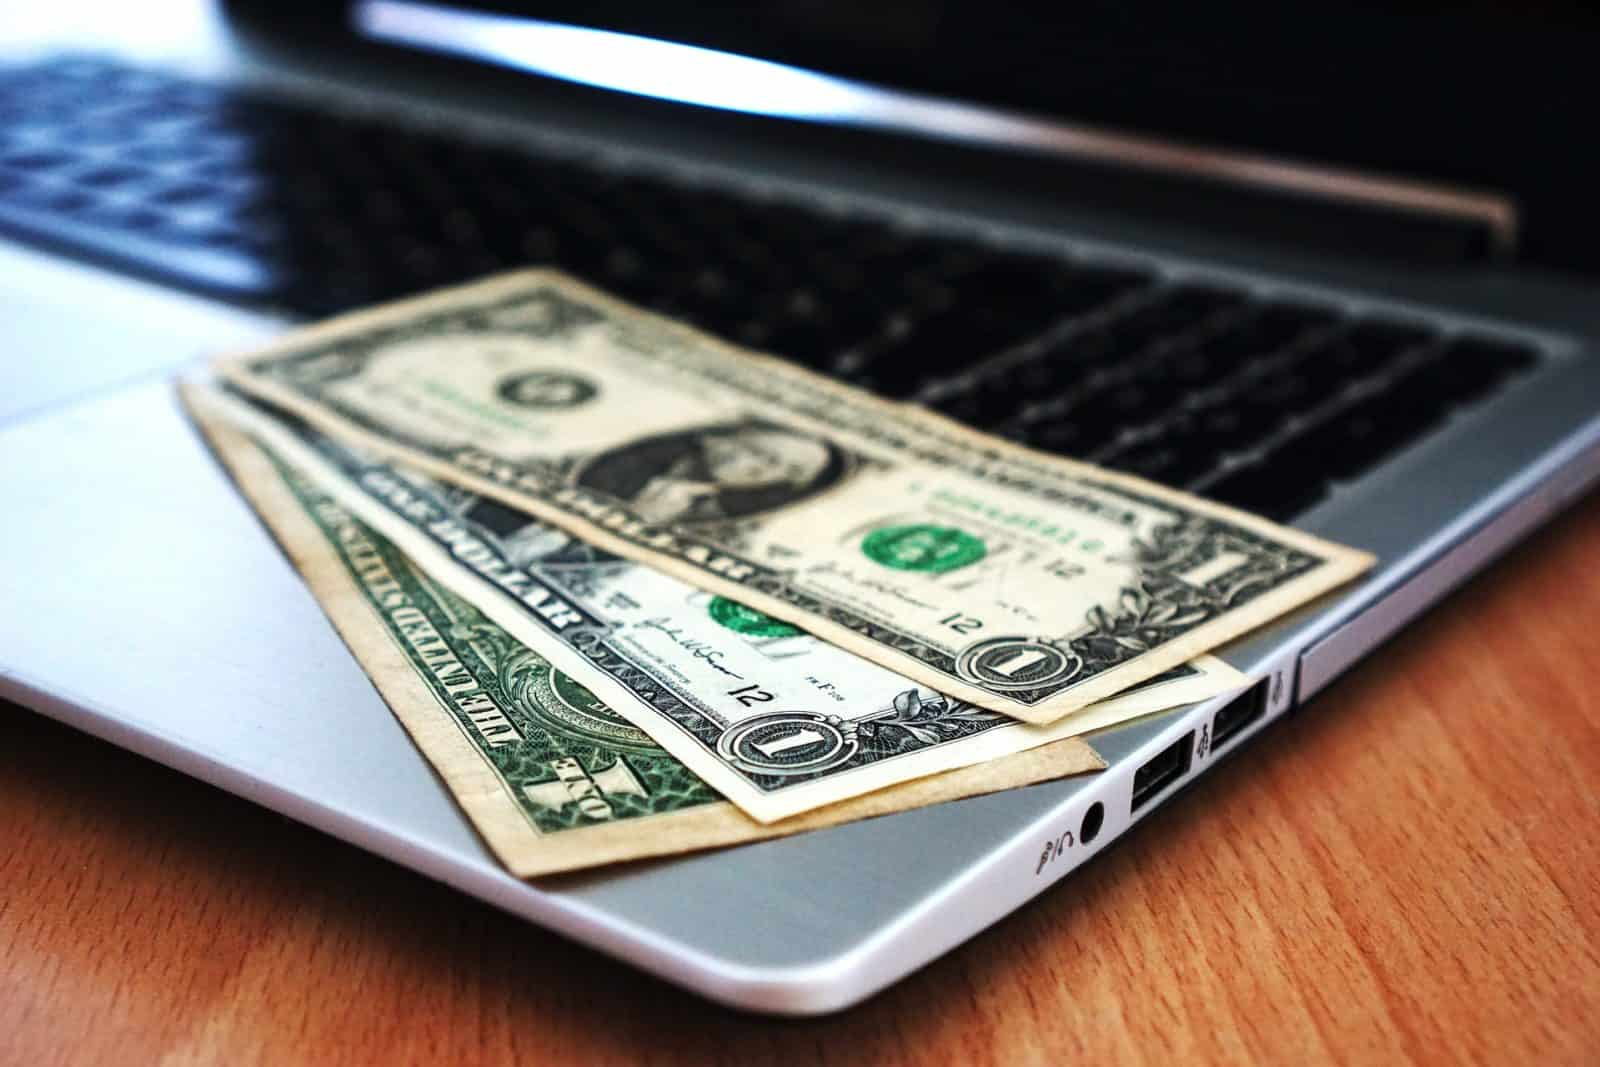 How To Make $200 In a Day Fast | 12 Legit Online Methods